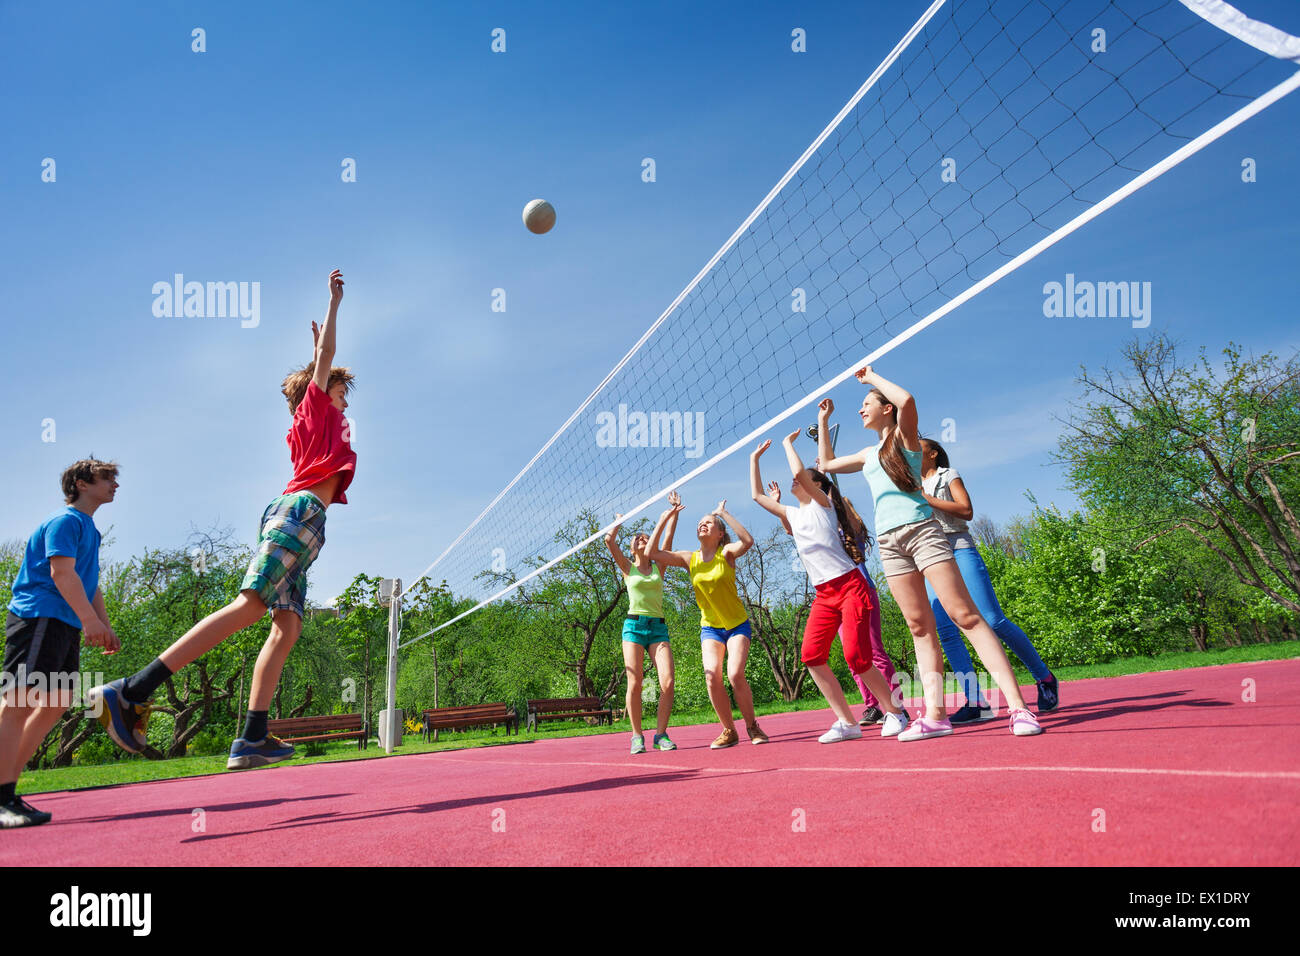 Teenagers play volleyball game on playing ground - Stock Image